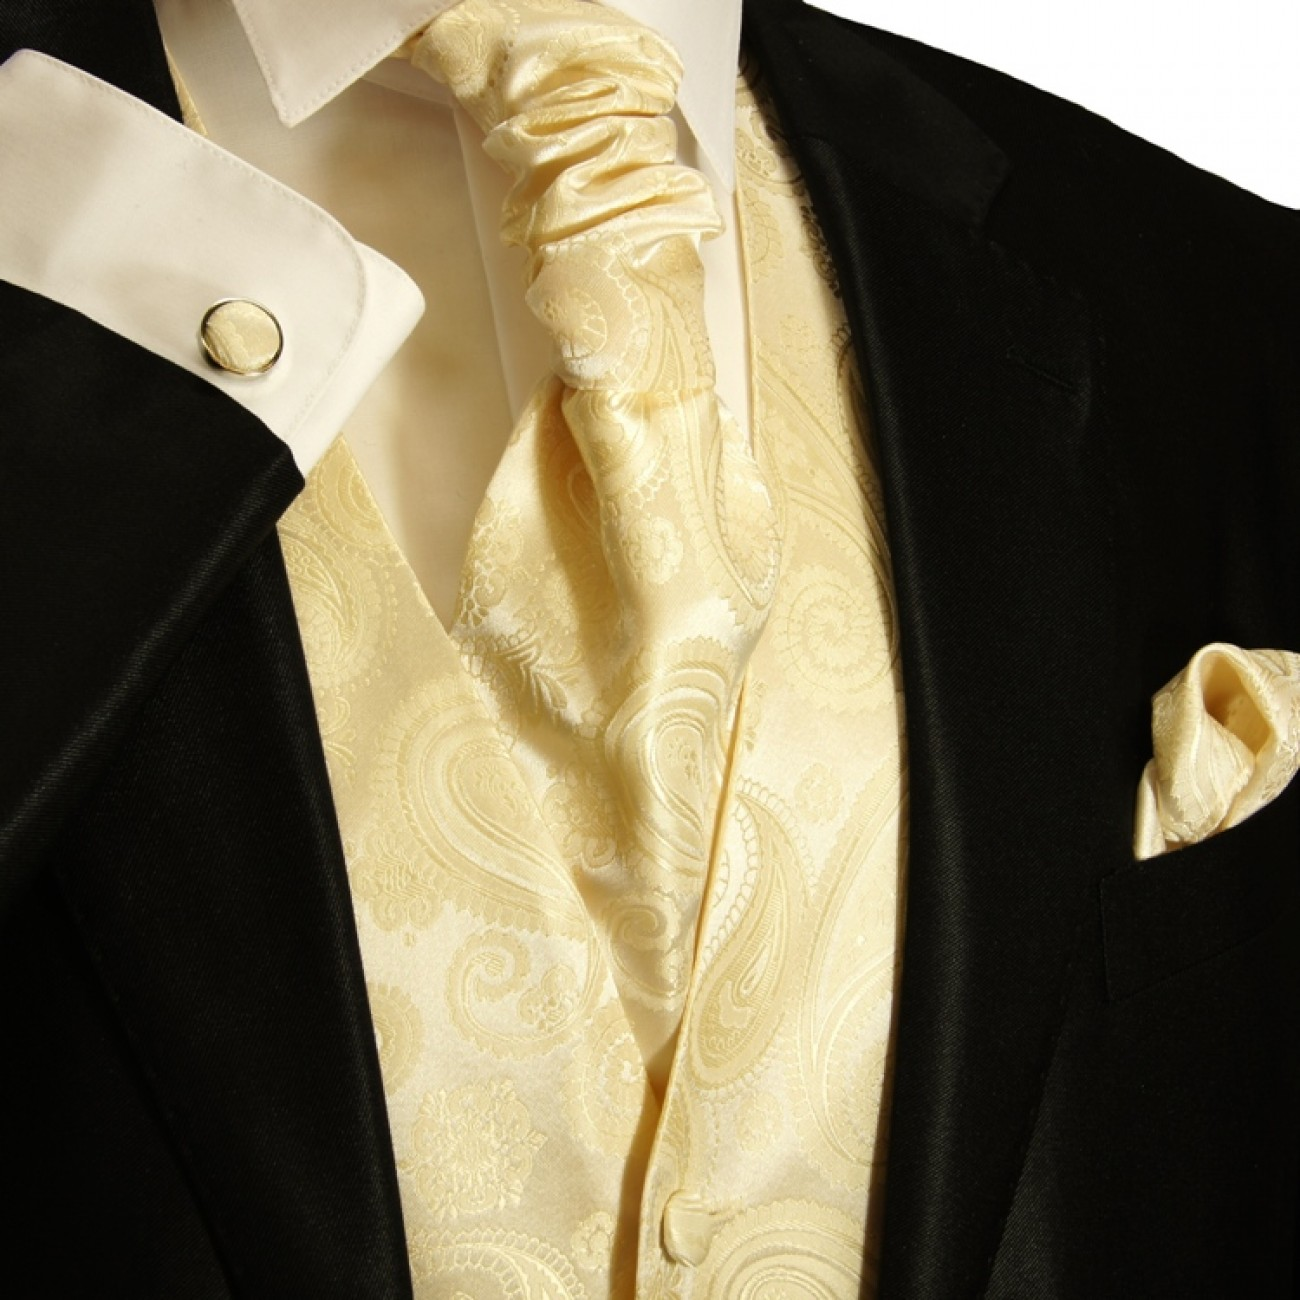 Wedding vest set with Ascot tie